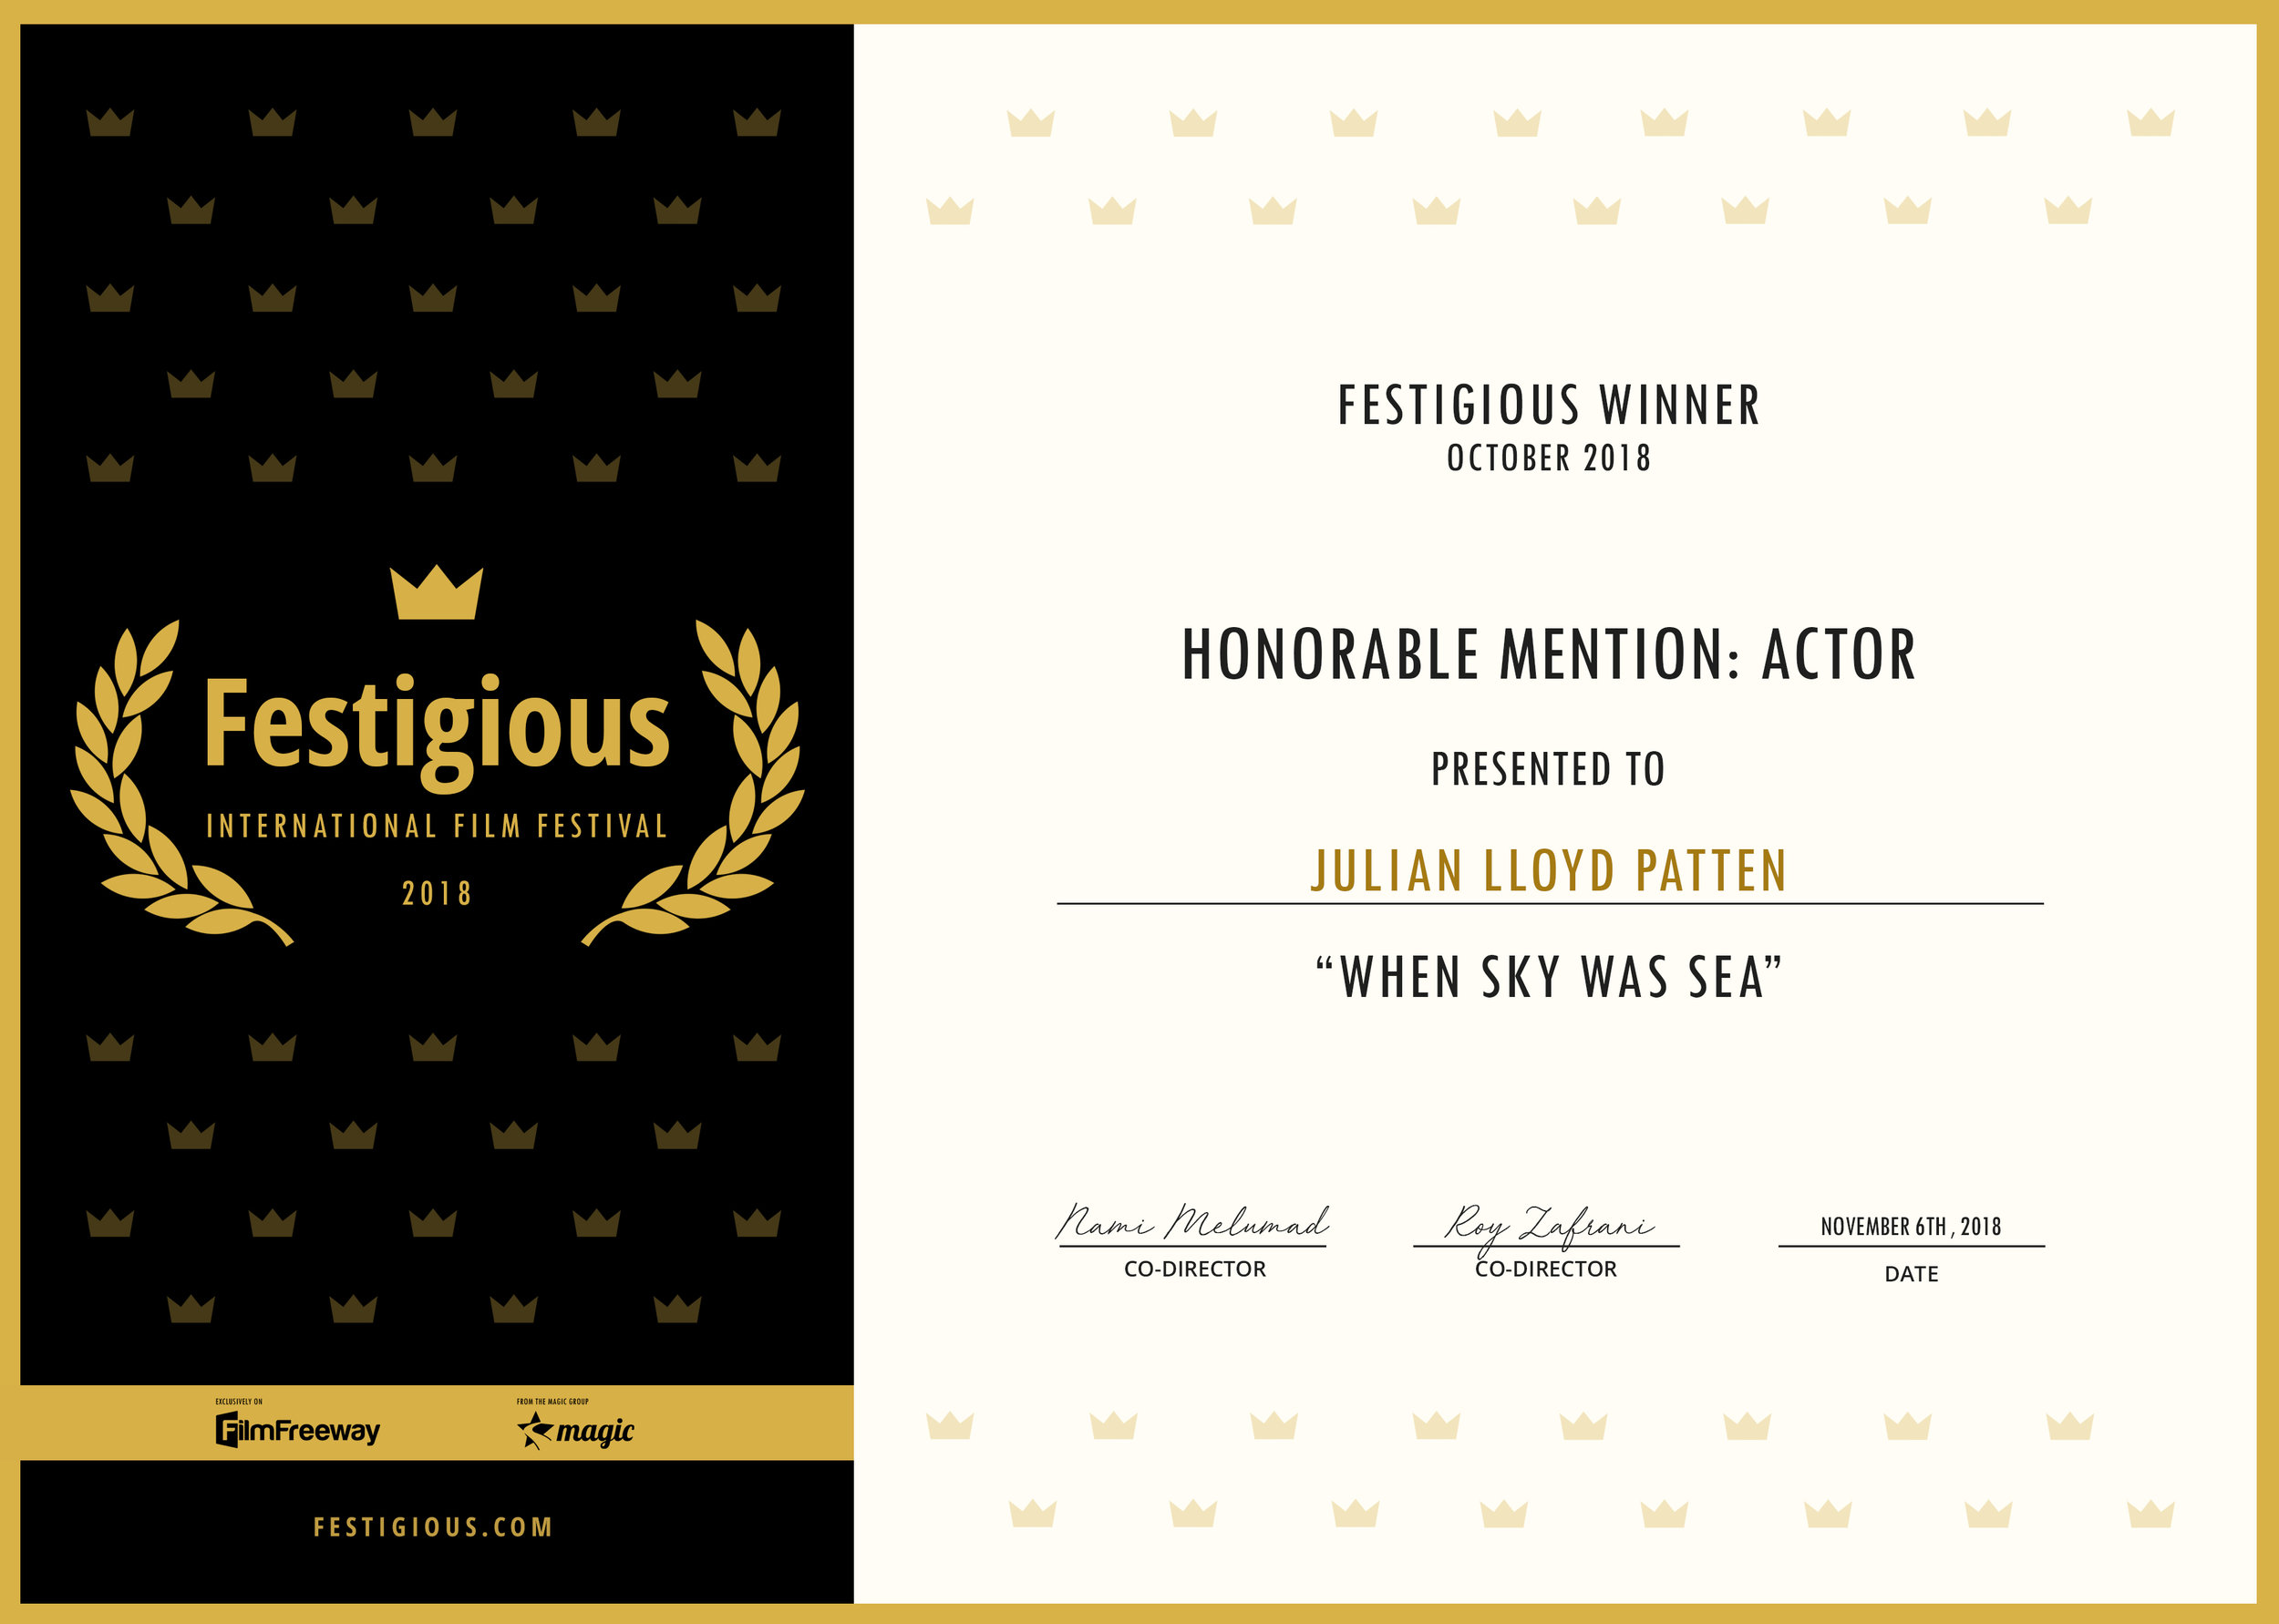 Festigious International Film Festival (2018) - Best Actor (Honorable Mention)